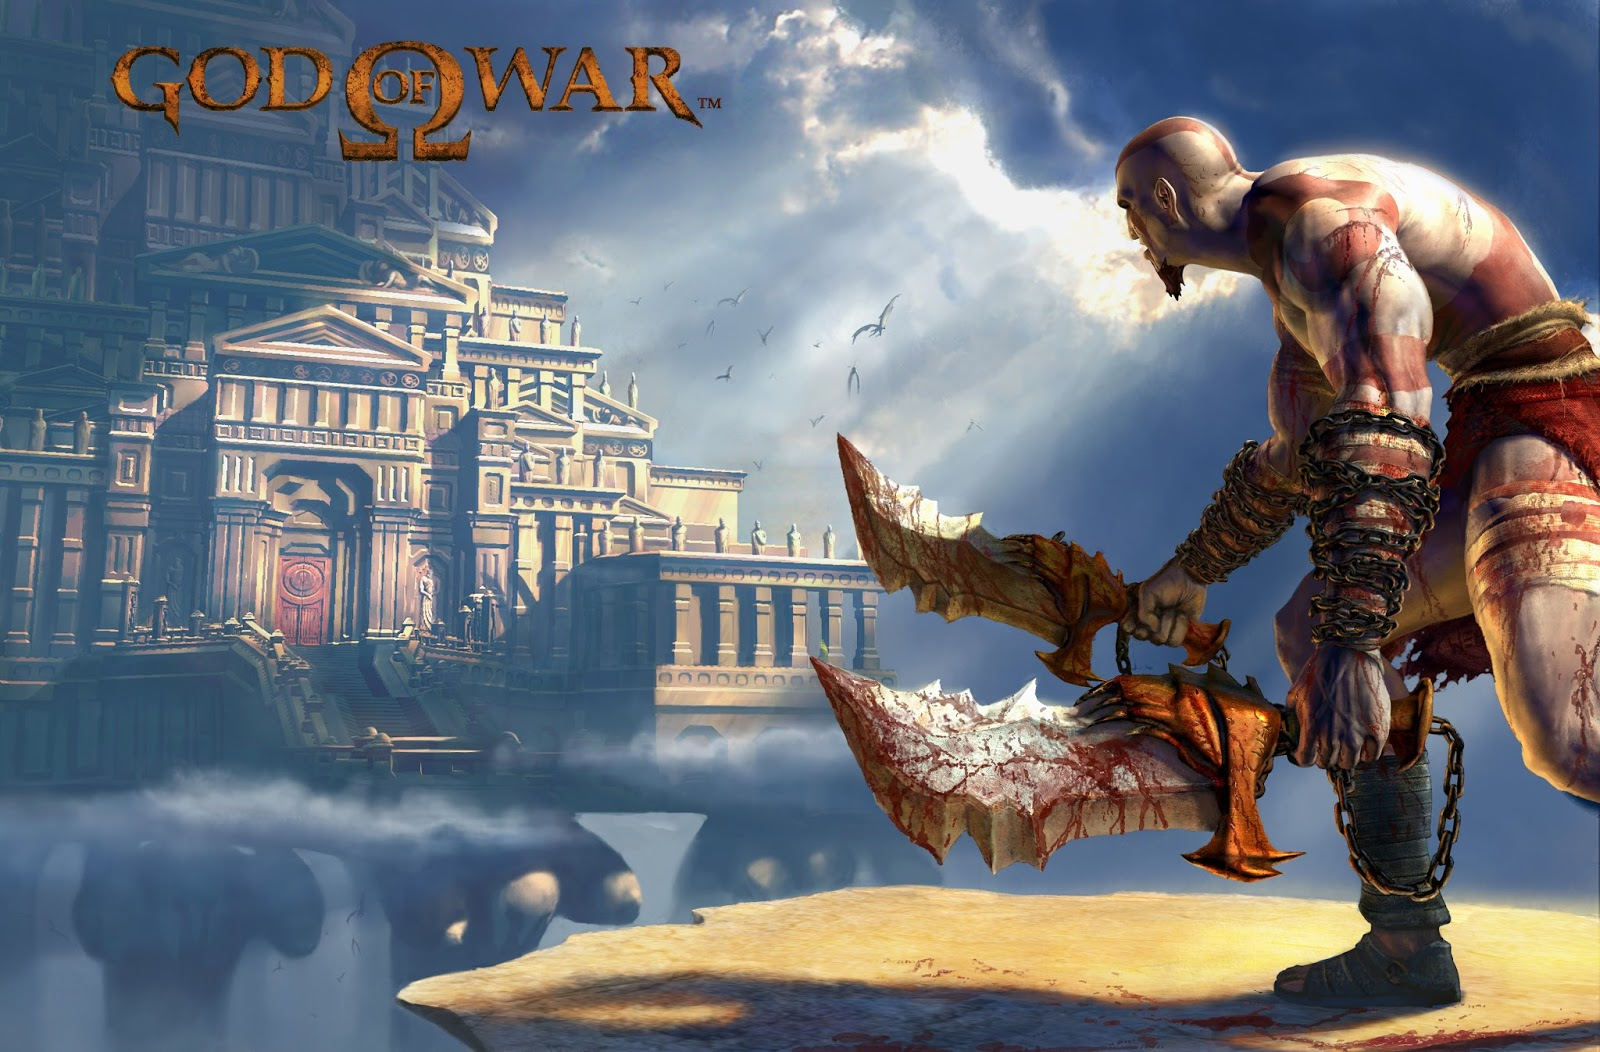 God Of War Ps3 Ps2 All Time Collection Hd Wallpapers Hd